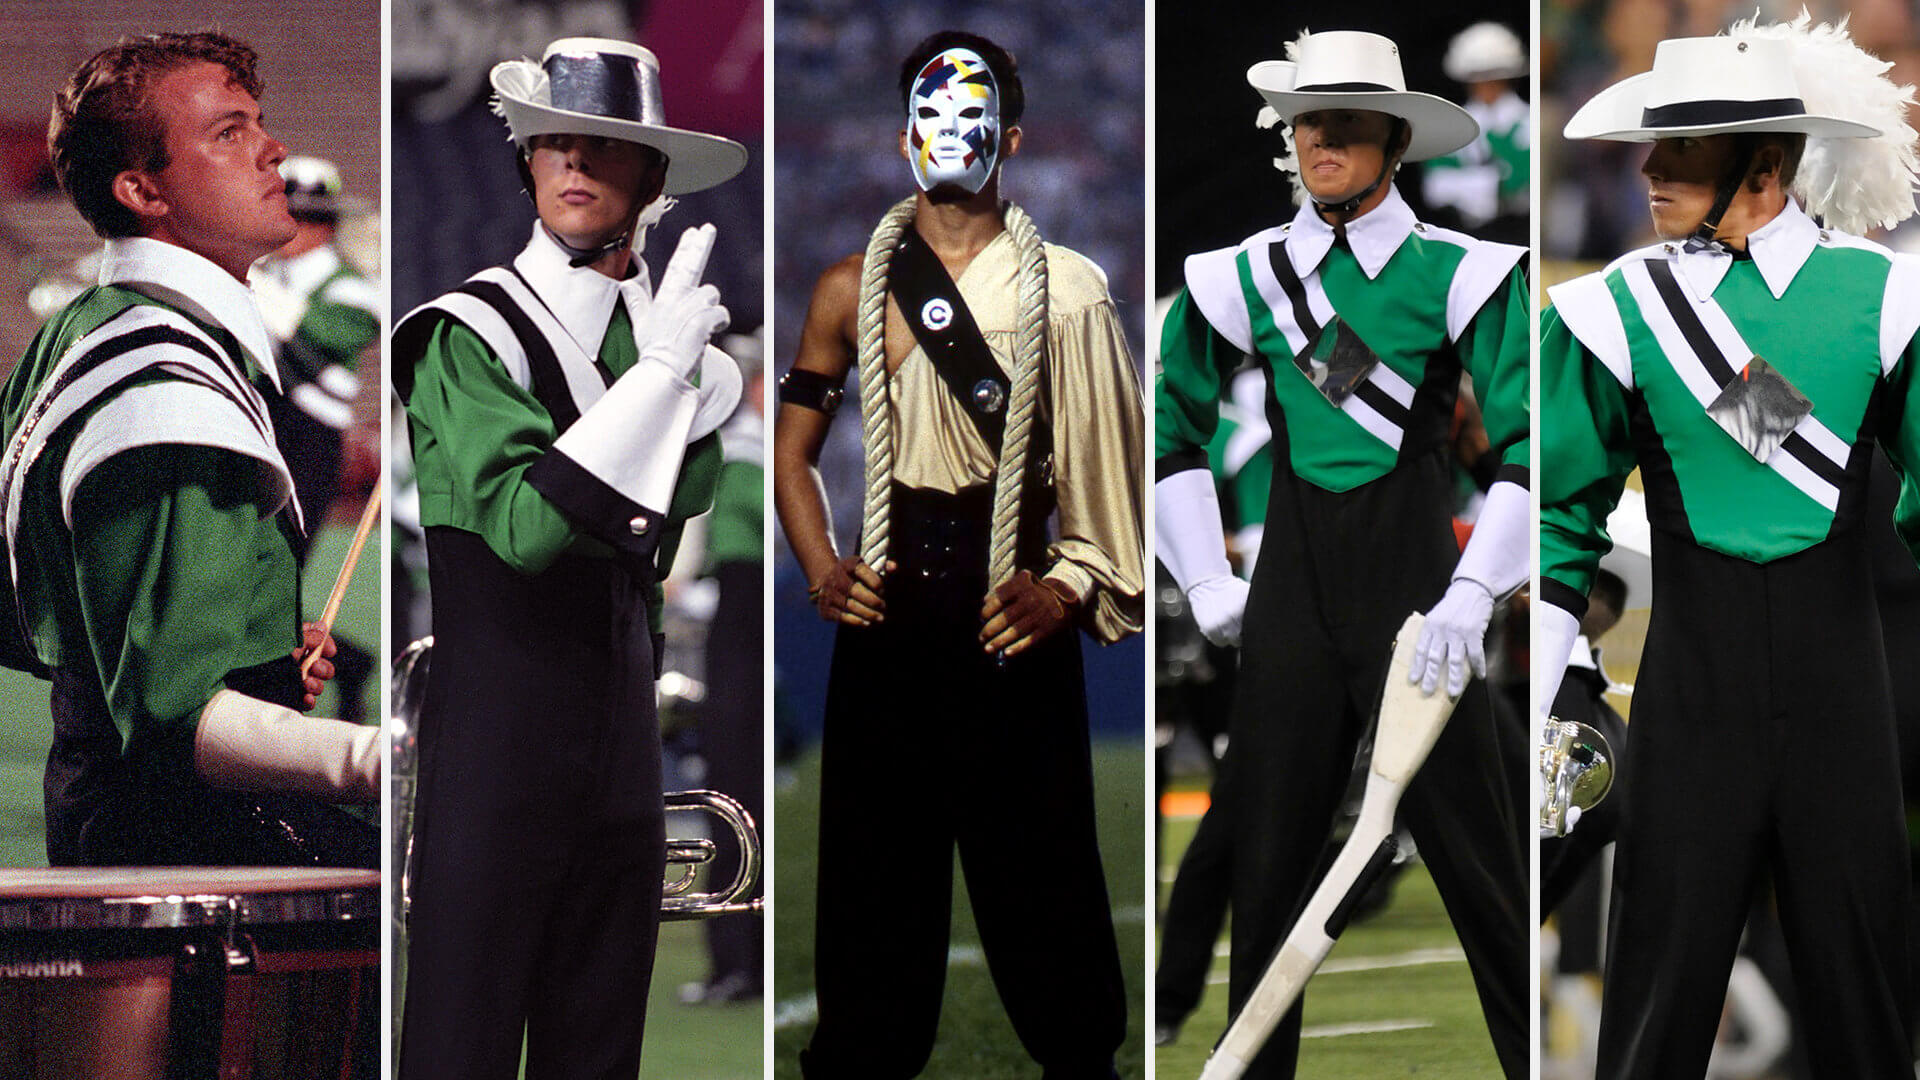 VIDEO: Top 5 most masculine Cavaliers shows